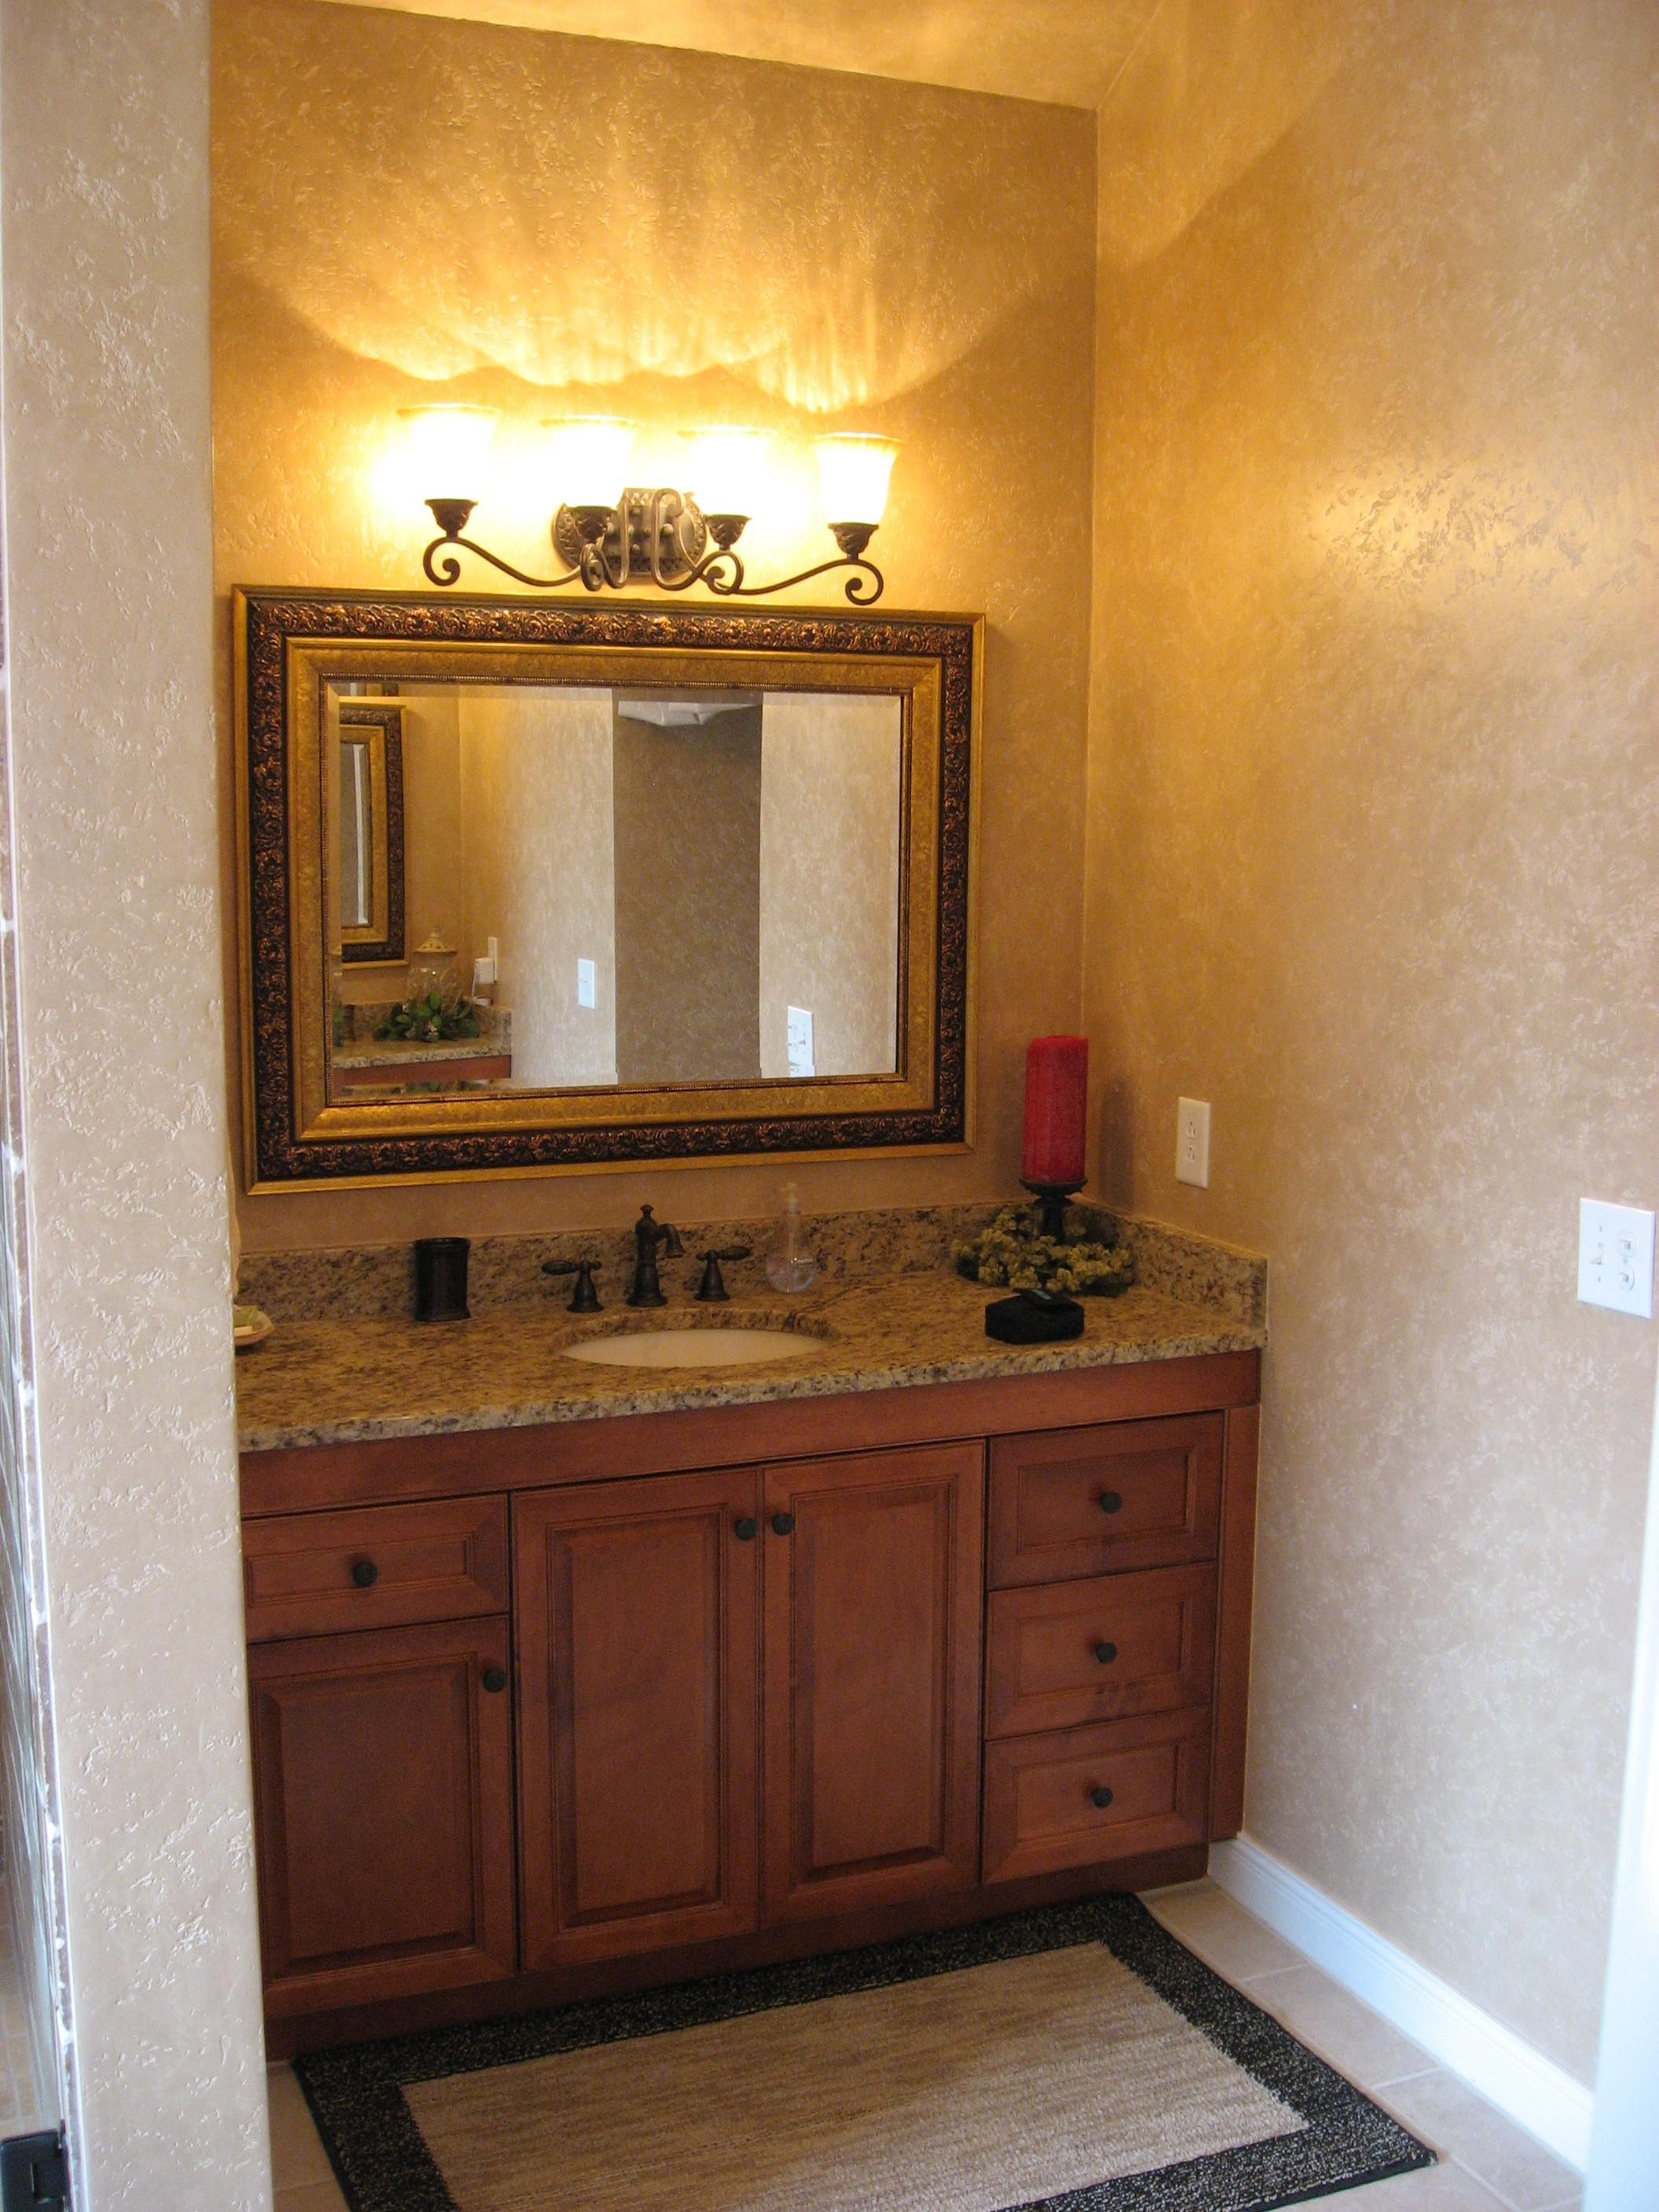 Bathrooms Design : Inch Bathroom Light Fixture Brushed Nickel Regarding Bathroom Lighting And Mirrors (Image 15 of 20)